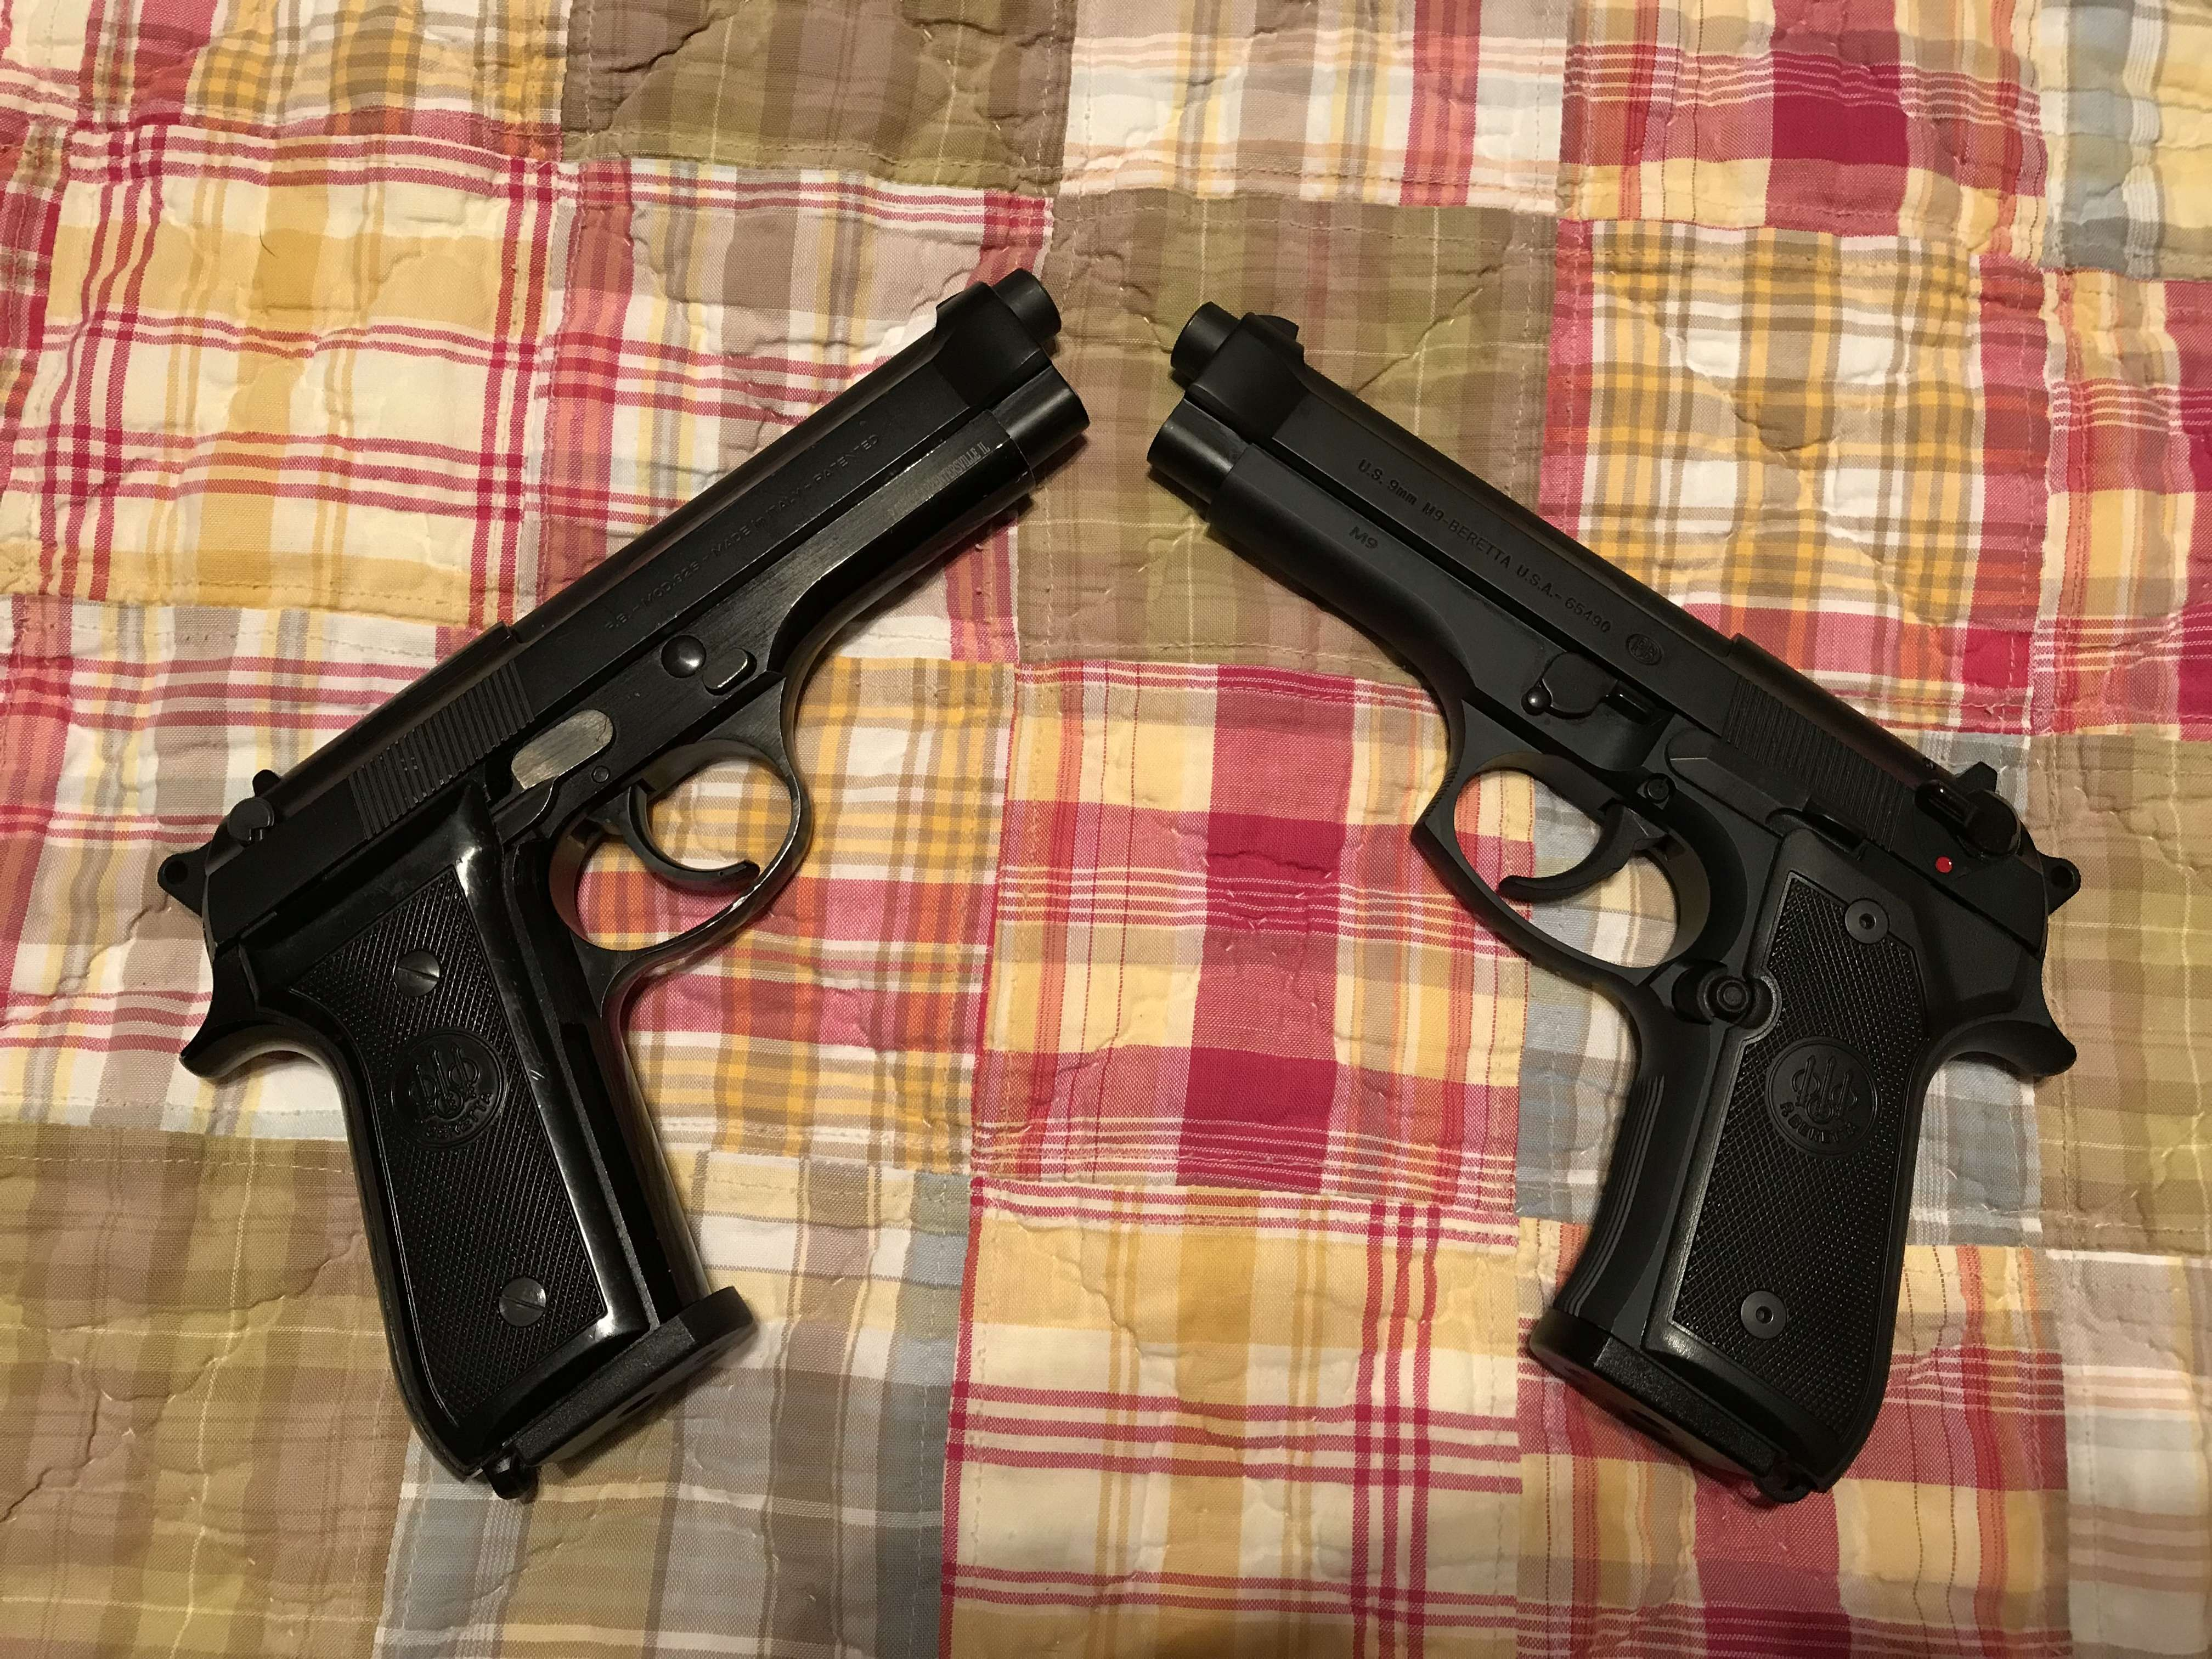 Why no love for Taurus PT 92? - 24hourcampfire